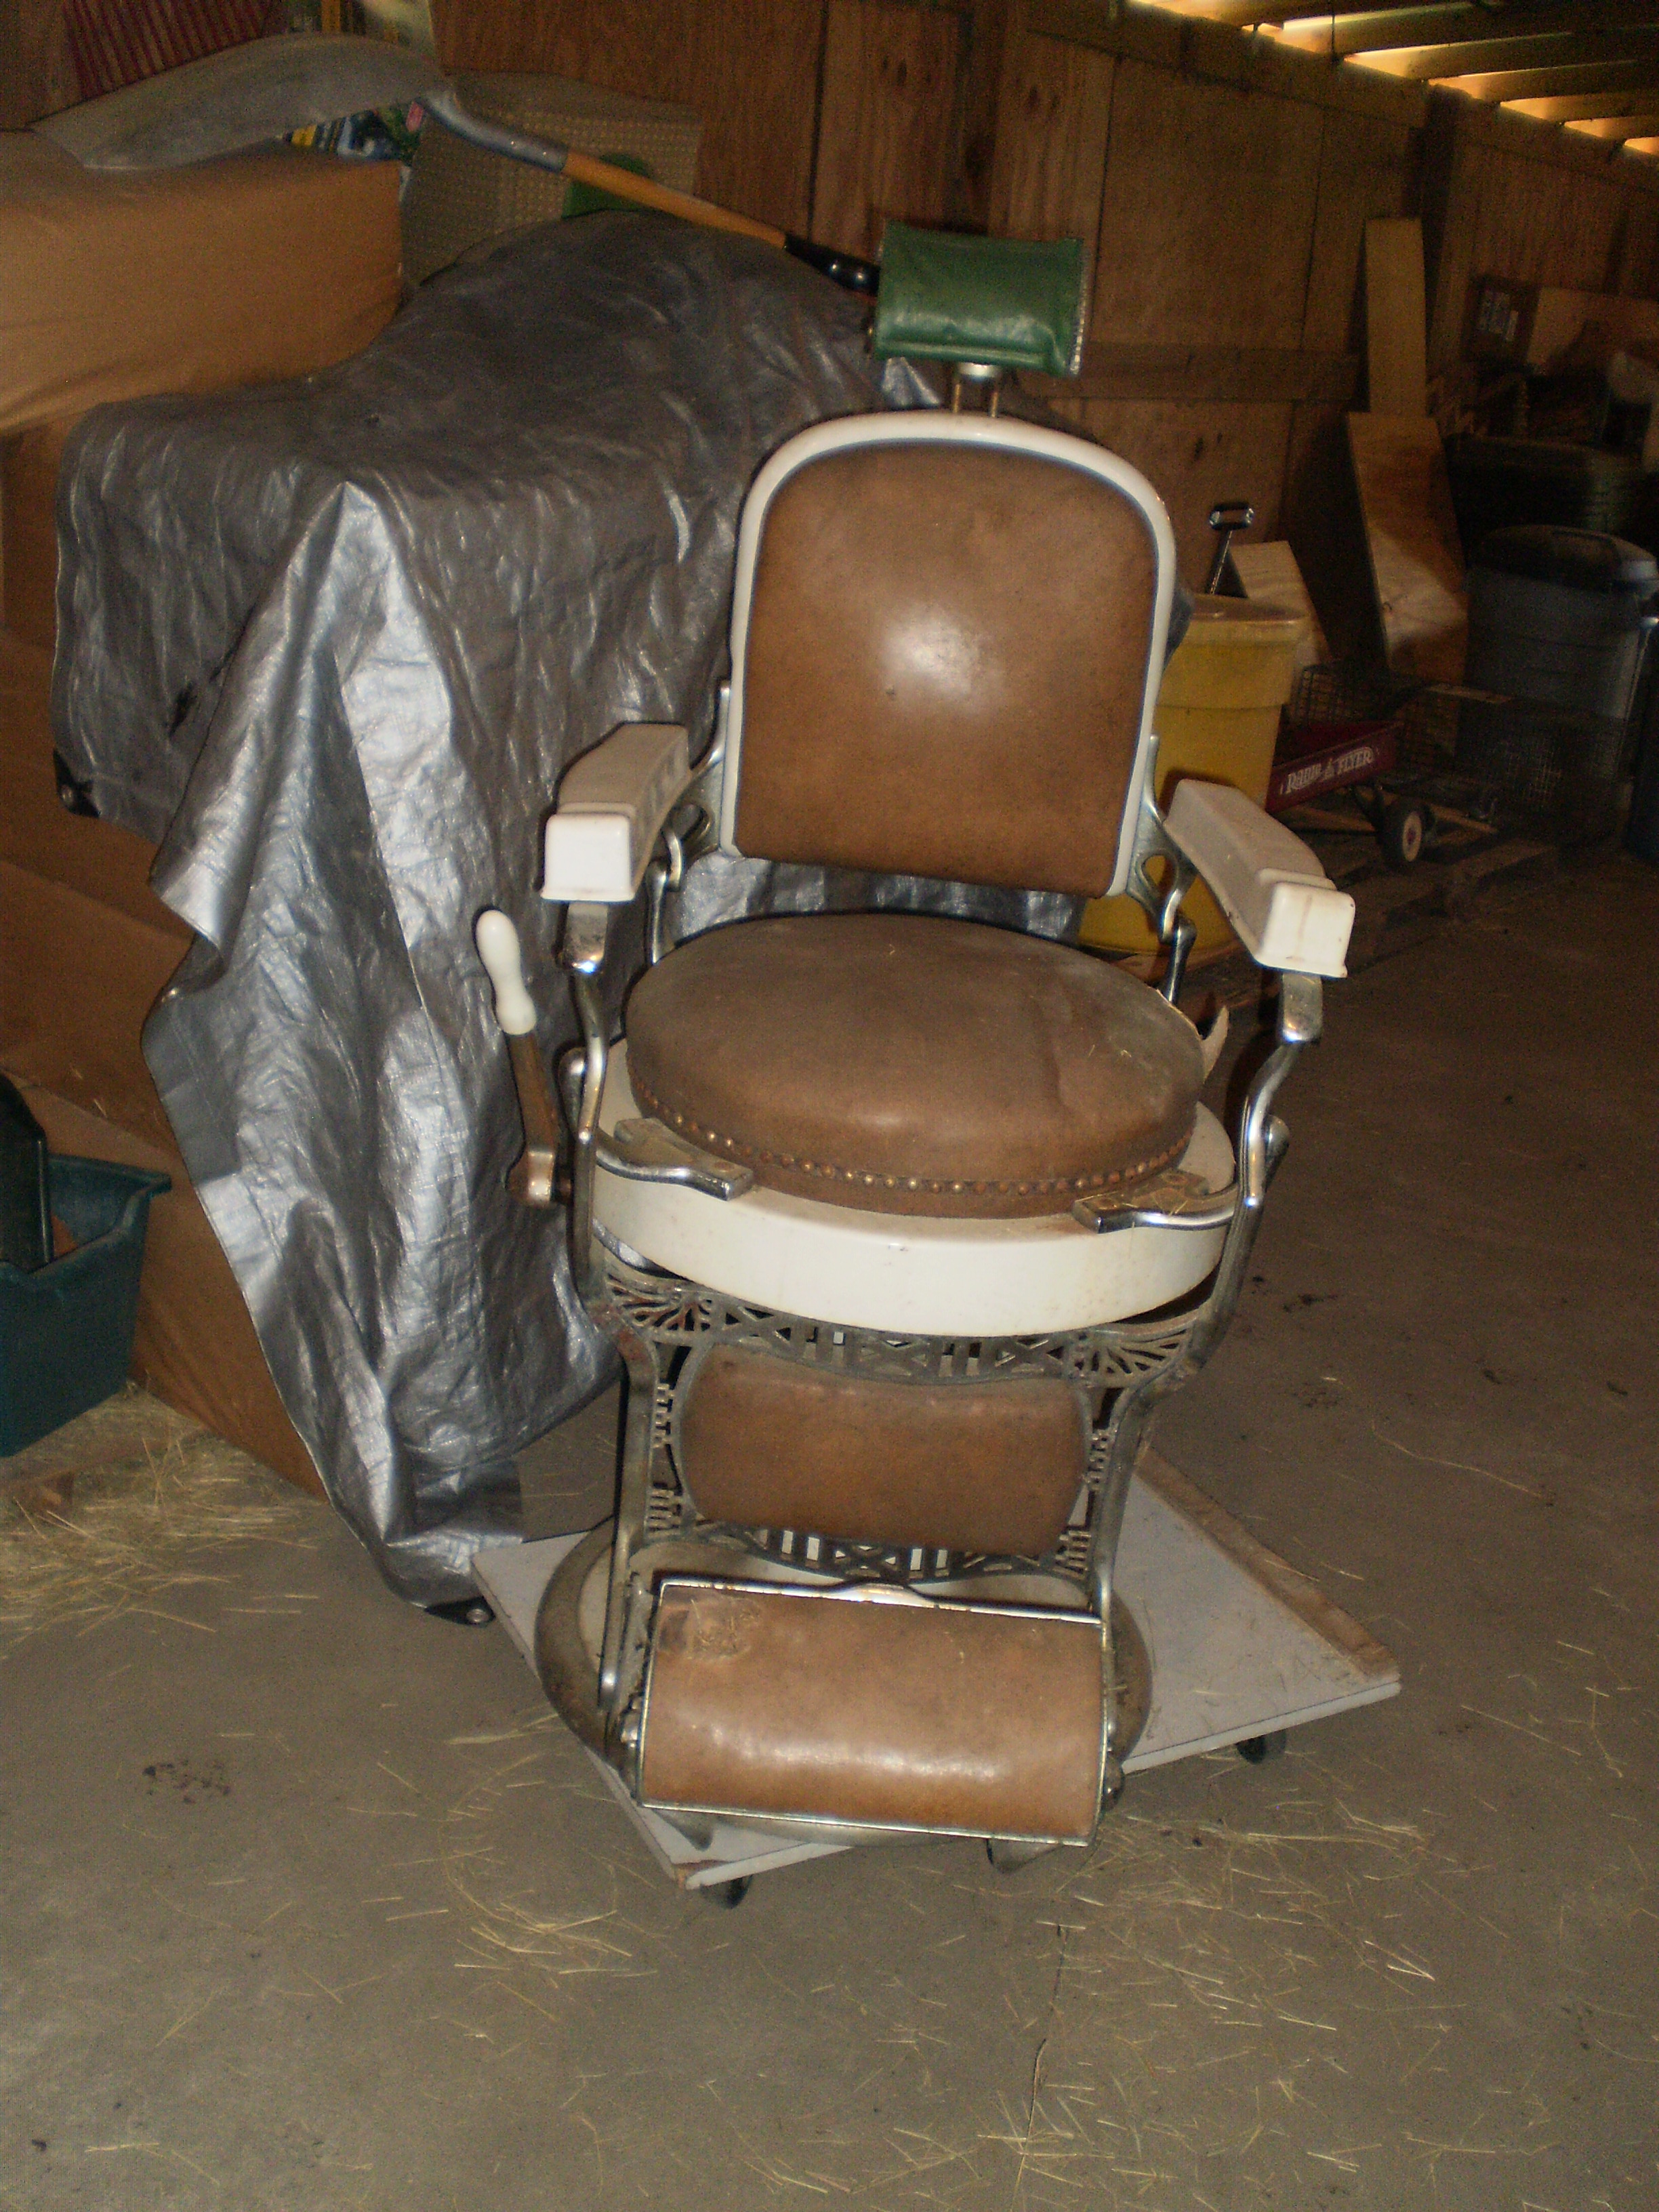 Koken barber chair serial number - Full Size Image